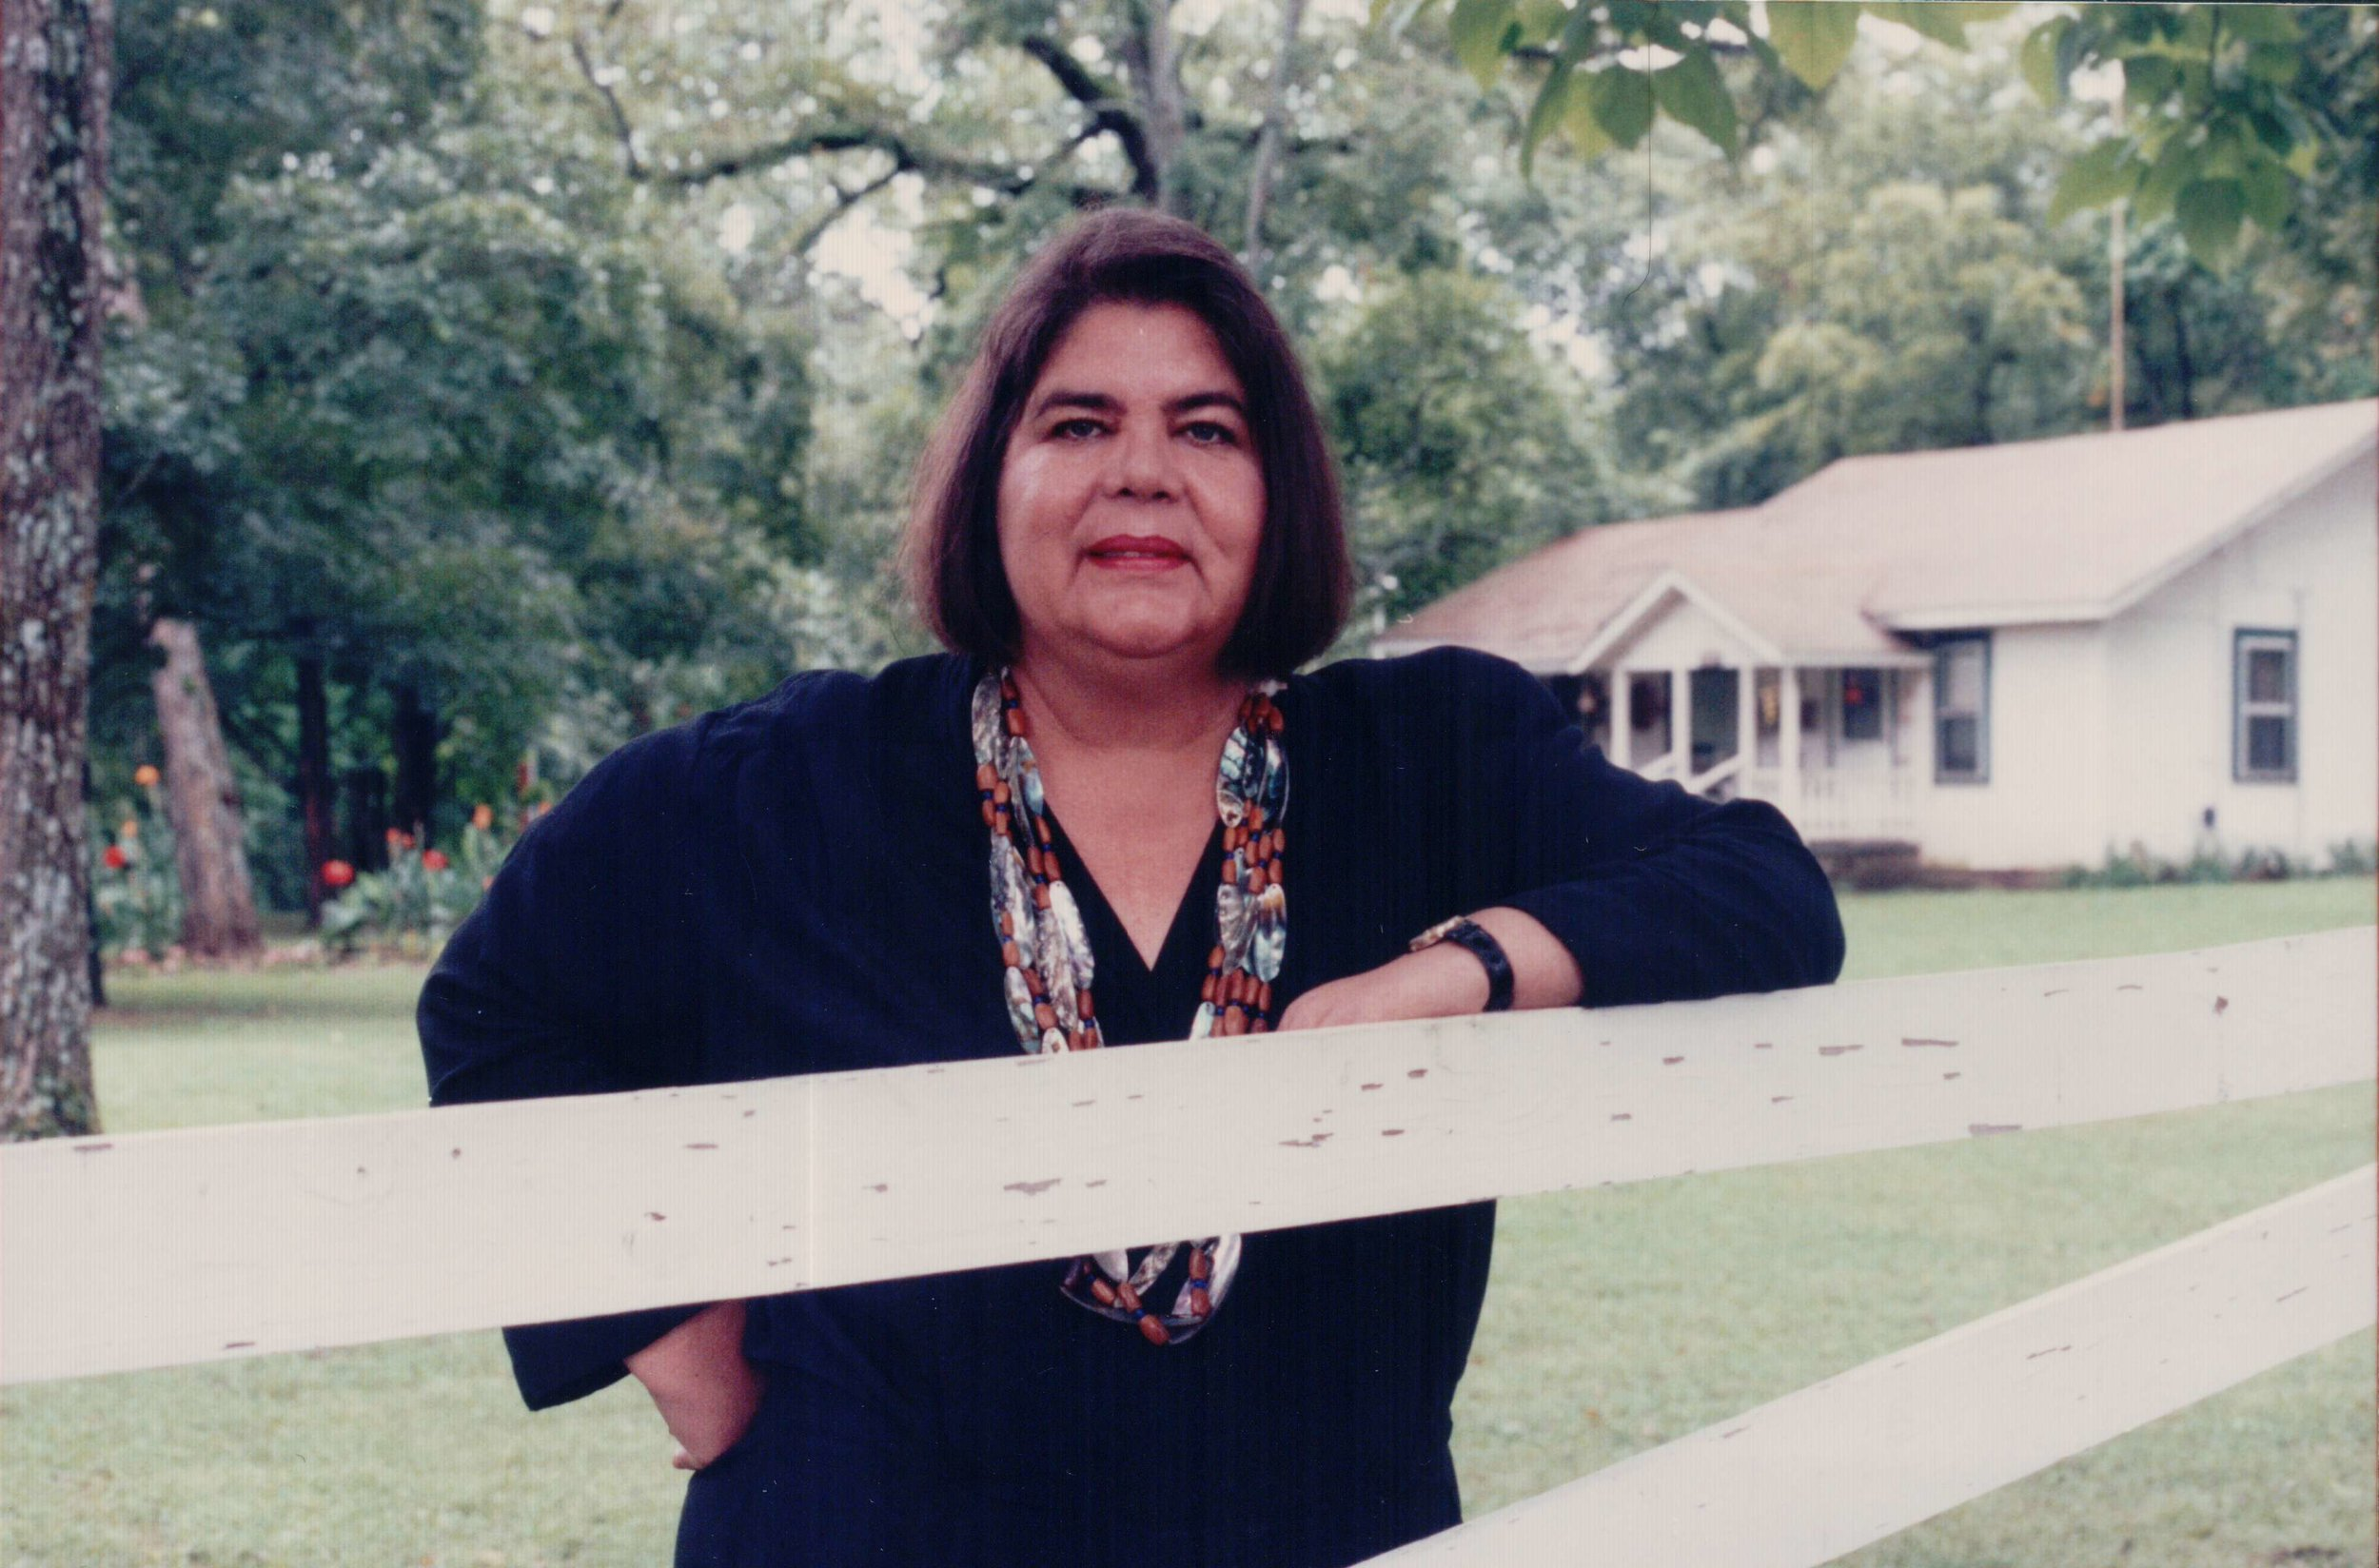 Wilma Mankiller poses by fence